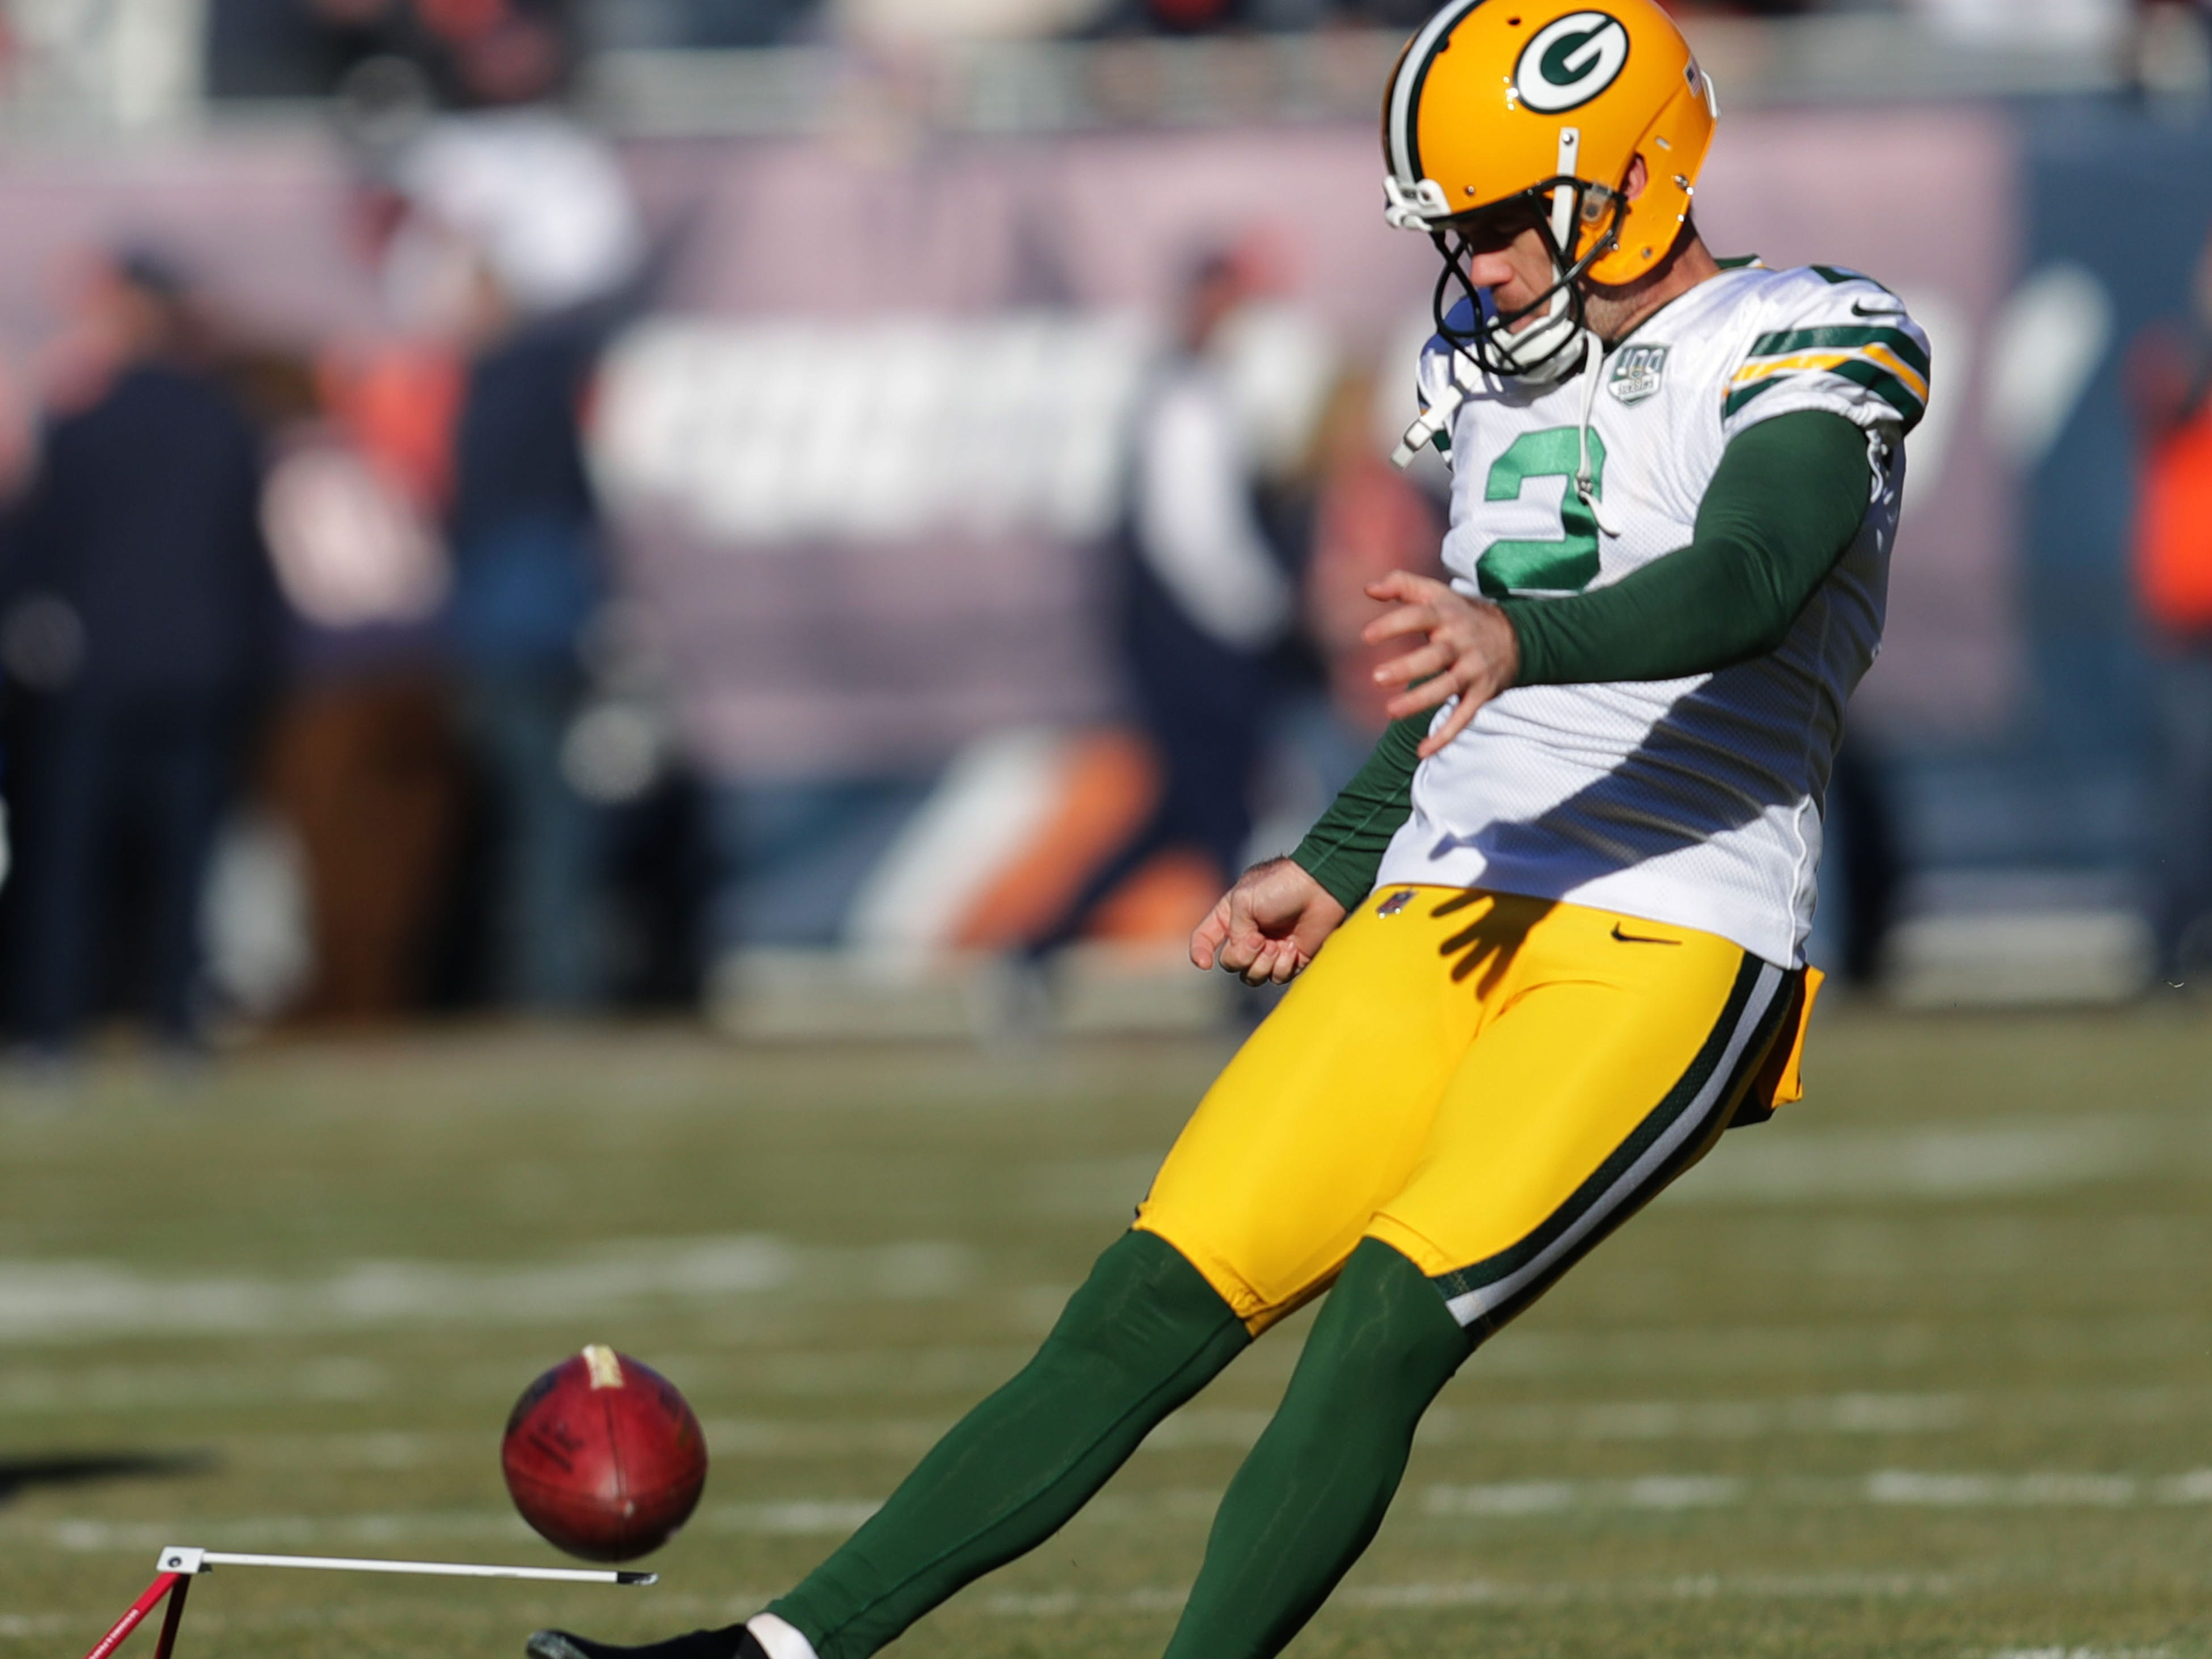 Green Bay Packers' Mason Crosby warms up before the Green Bay Packers game against the Chicago Bears at Soldier Field Sunday, Dec. 16, 2018, in Chicago.